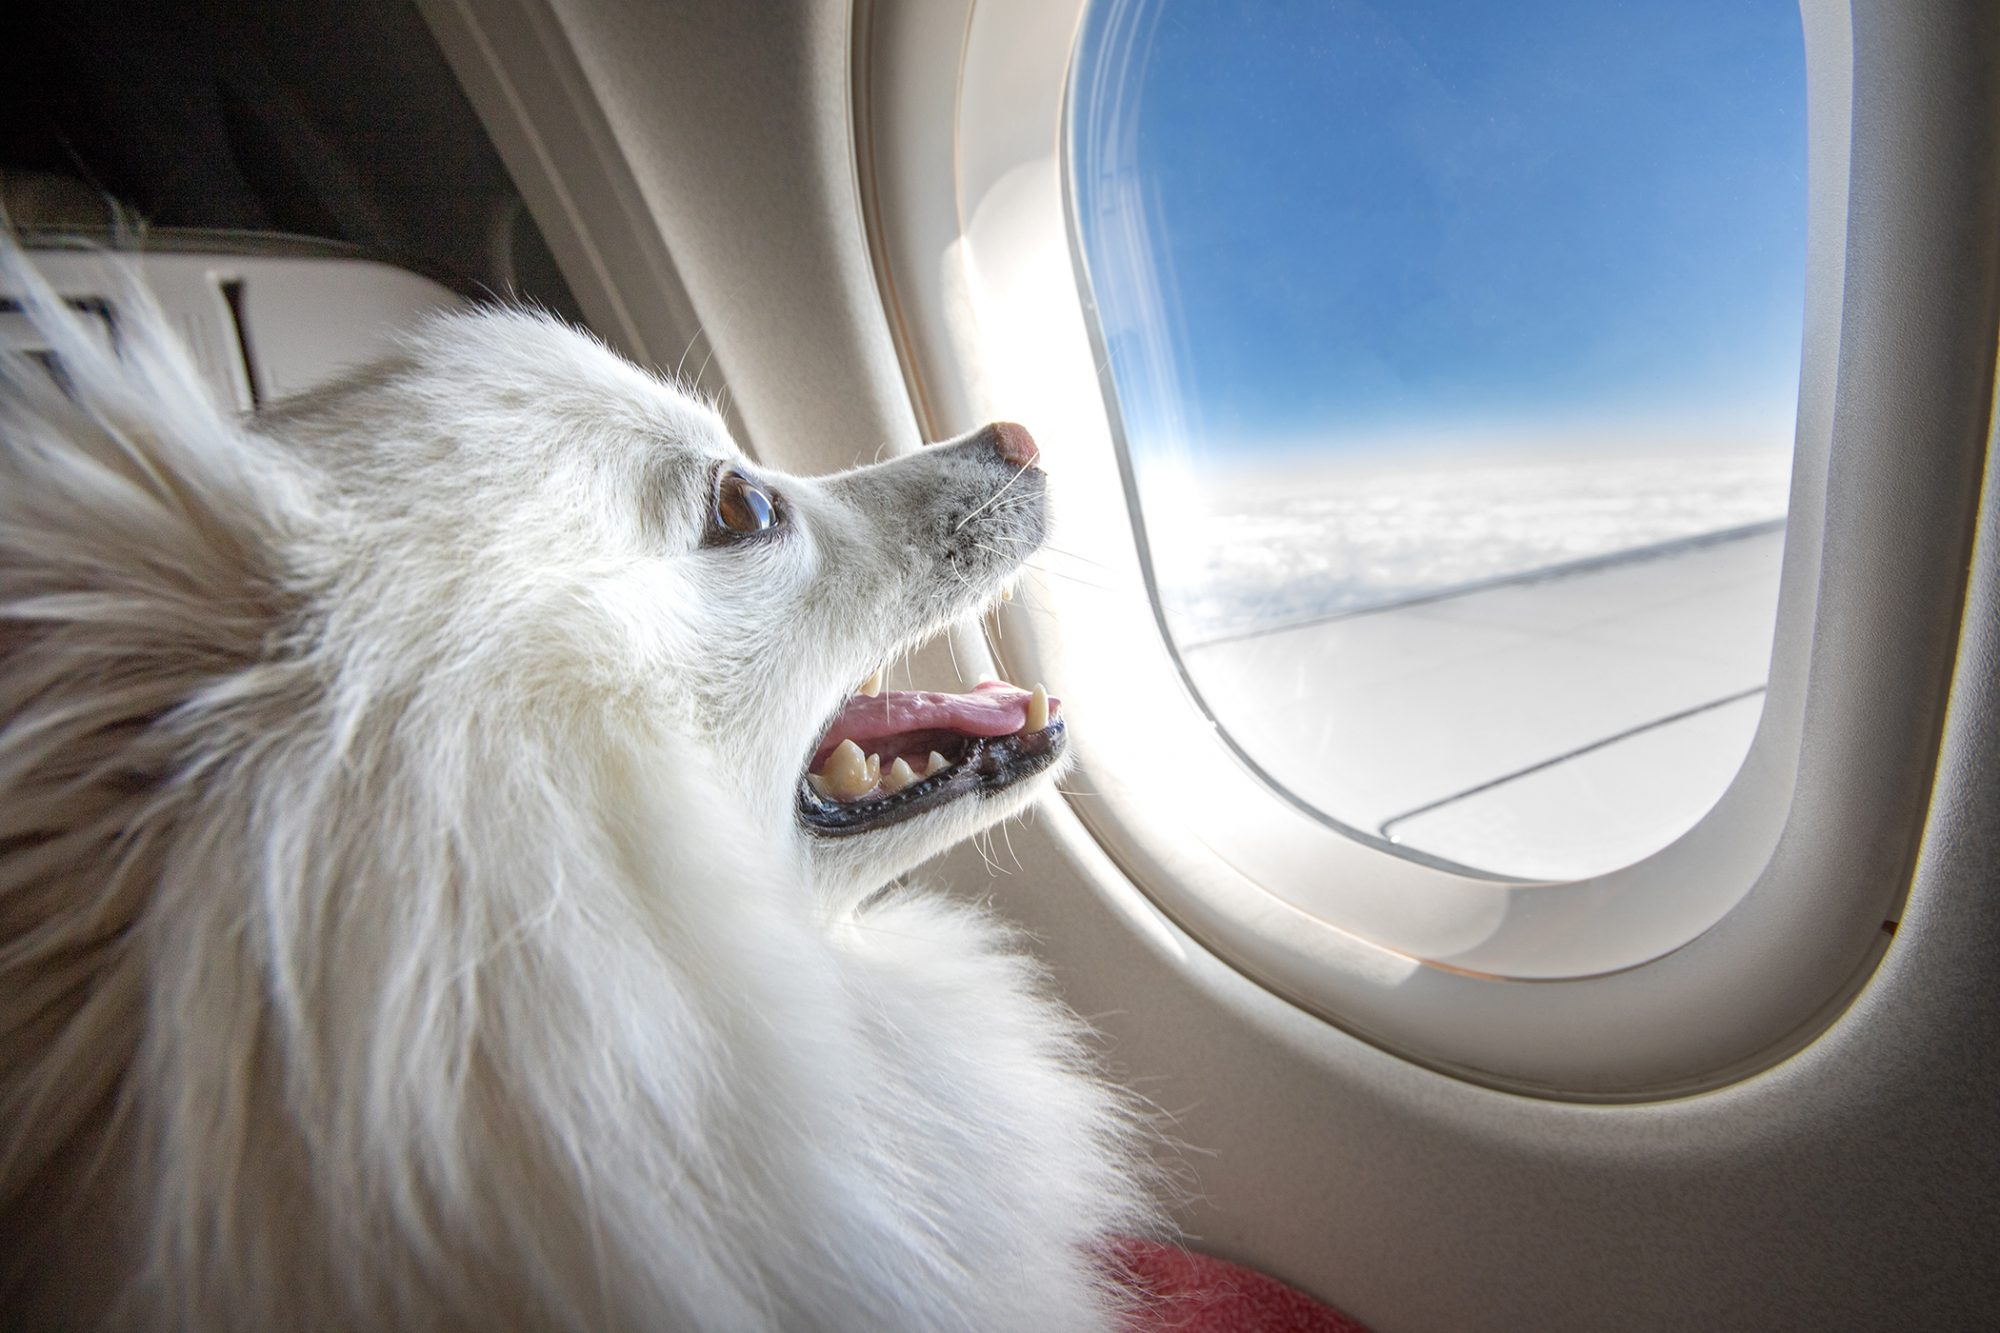 white long-haired dog looks excitedly out of airplane window